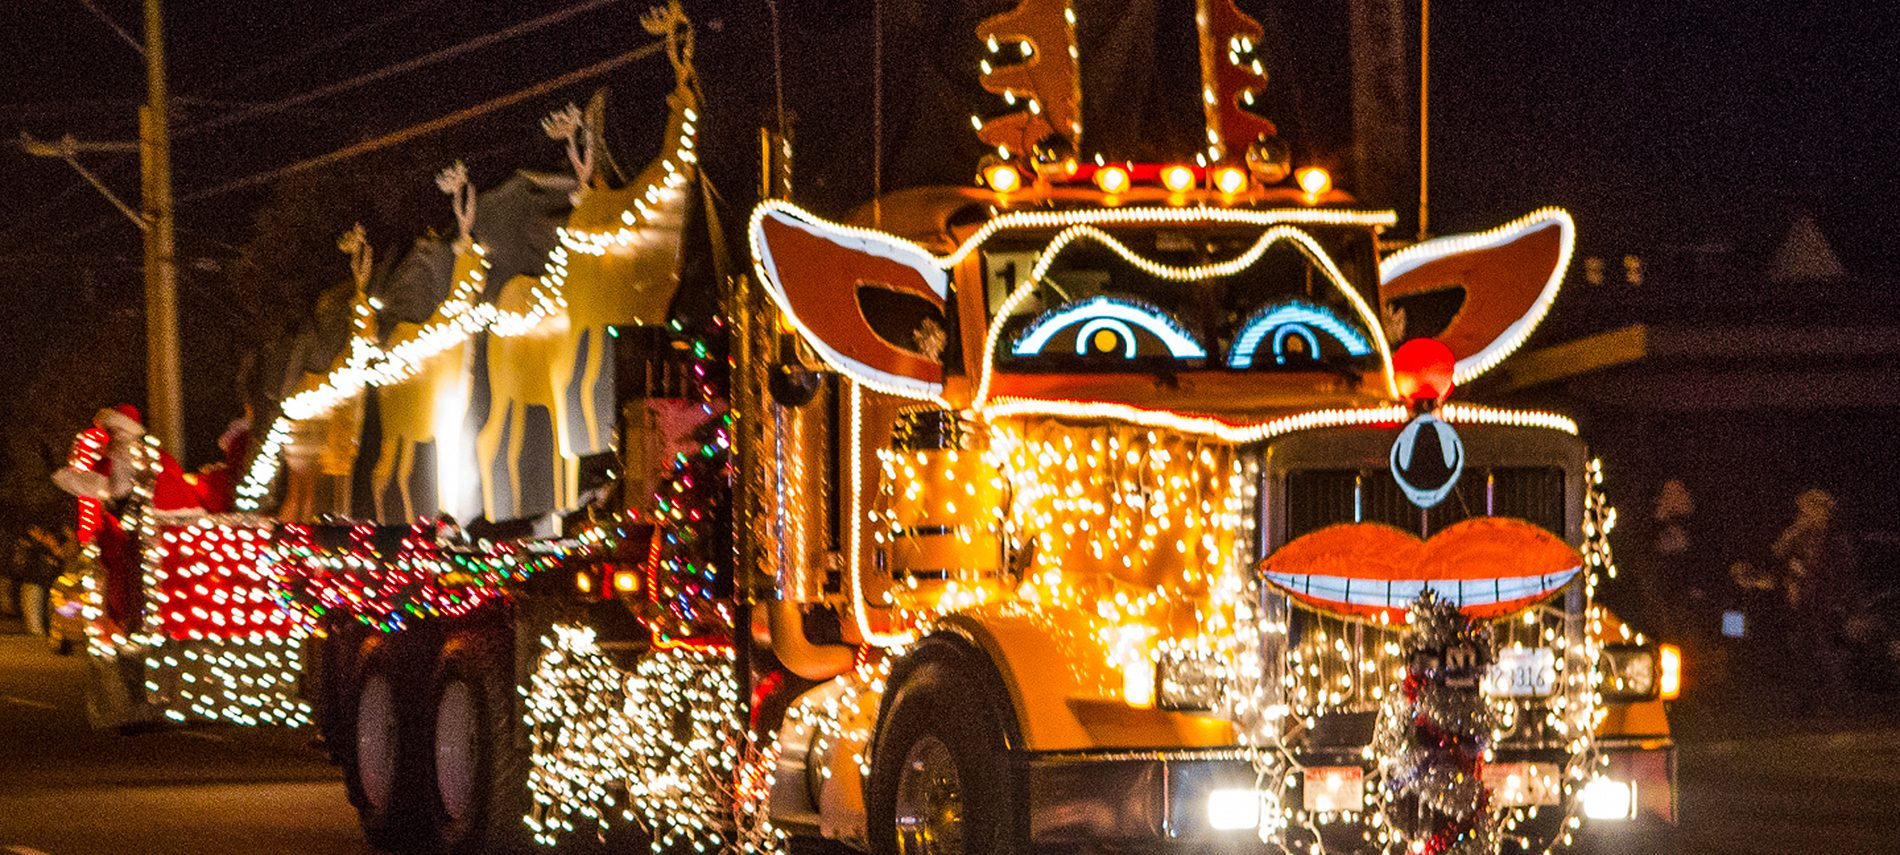 trucker parade truck lighted with multicolor Christmas lights Santa sleigh and reindeer